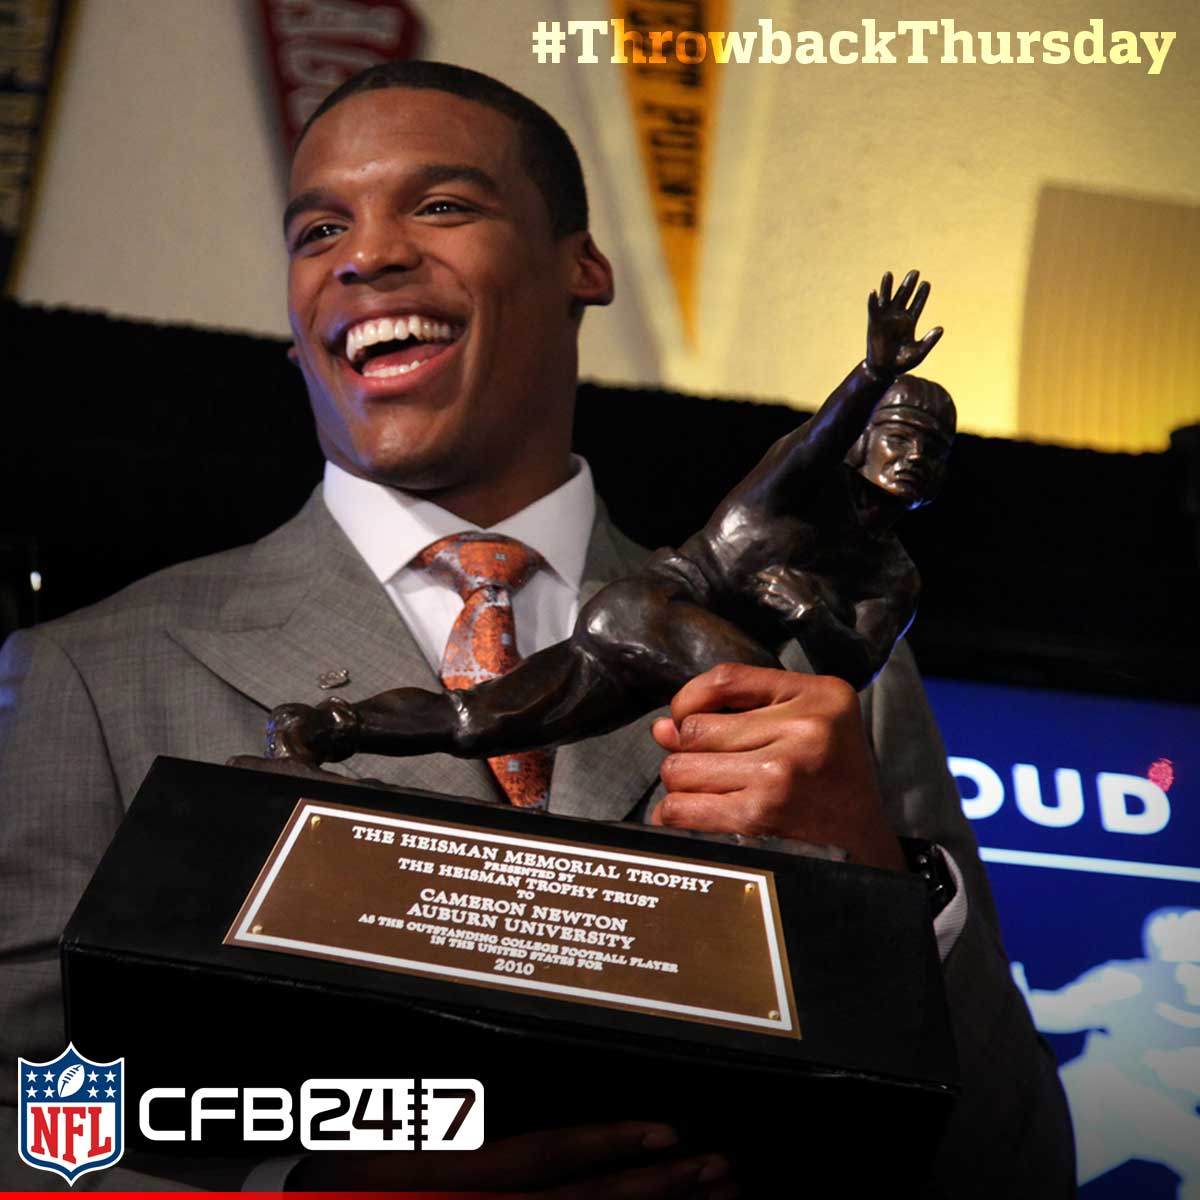 tbt: will cam newton add an nfl mvp award to his trophy case